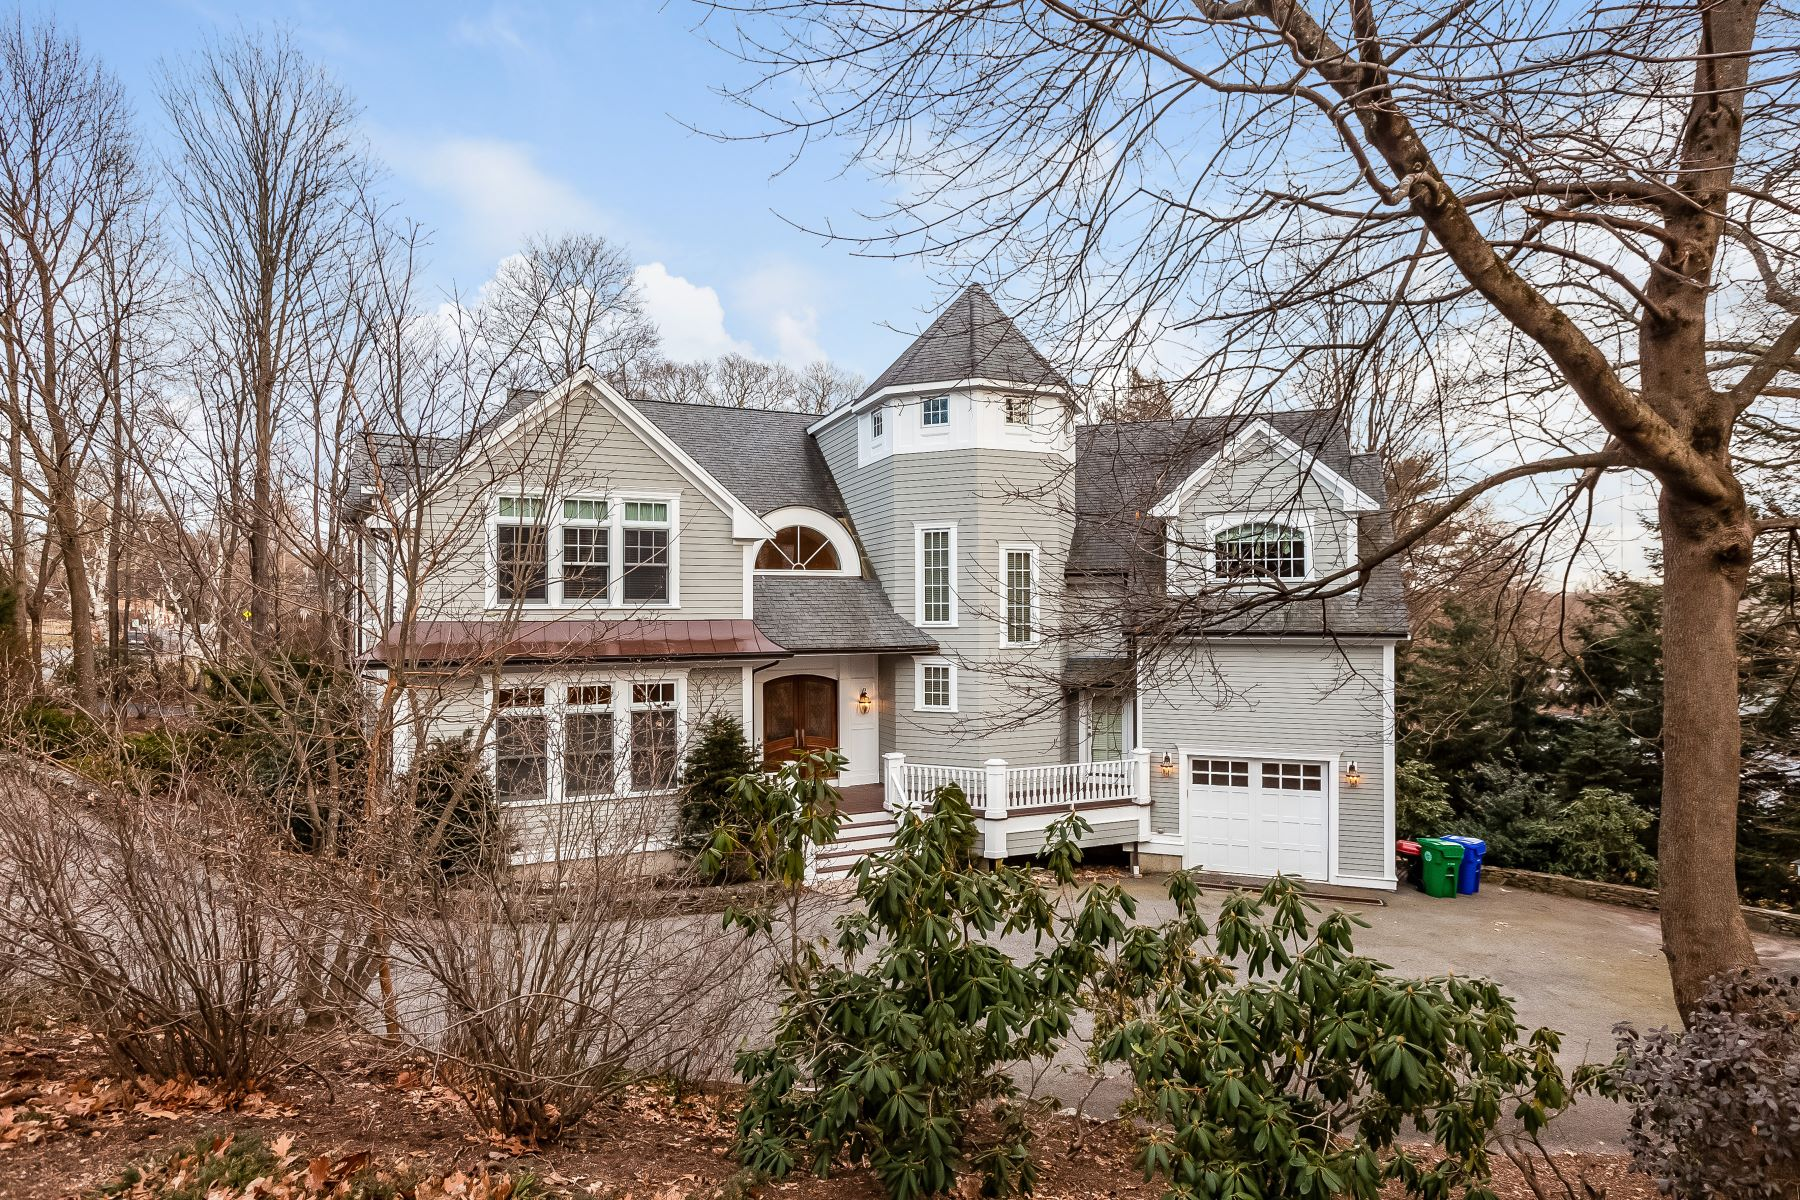 Single Family Home for Active at 78 Waban Ave Newton, Massachusetts 02468 United States